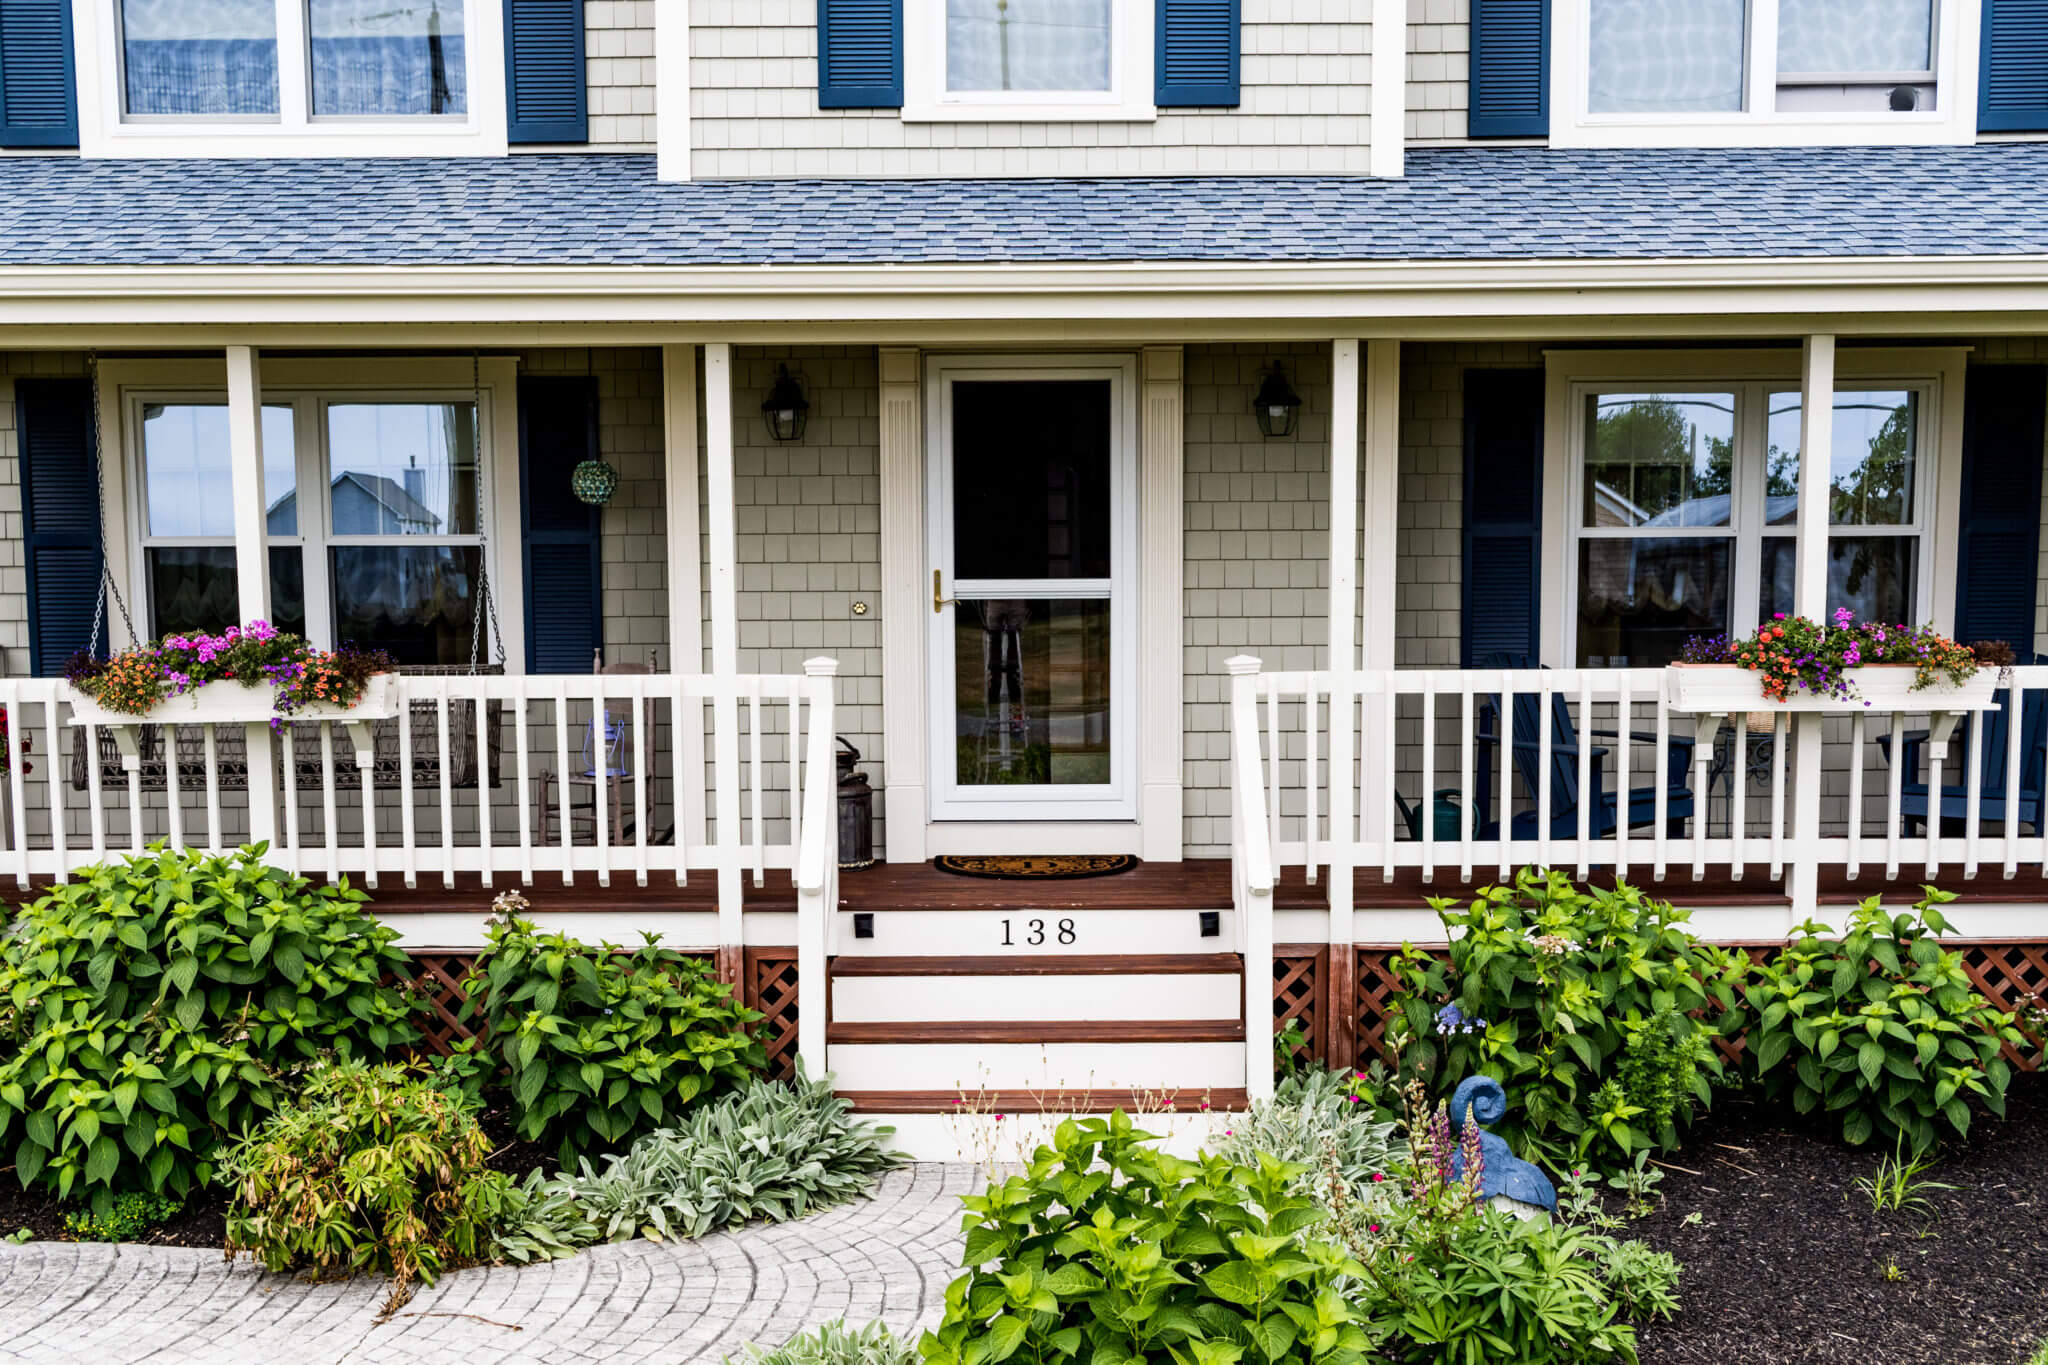 Vinyl siding, replacement roof, & windows in MA by Marshall Building & Remodeling